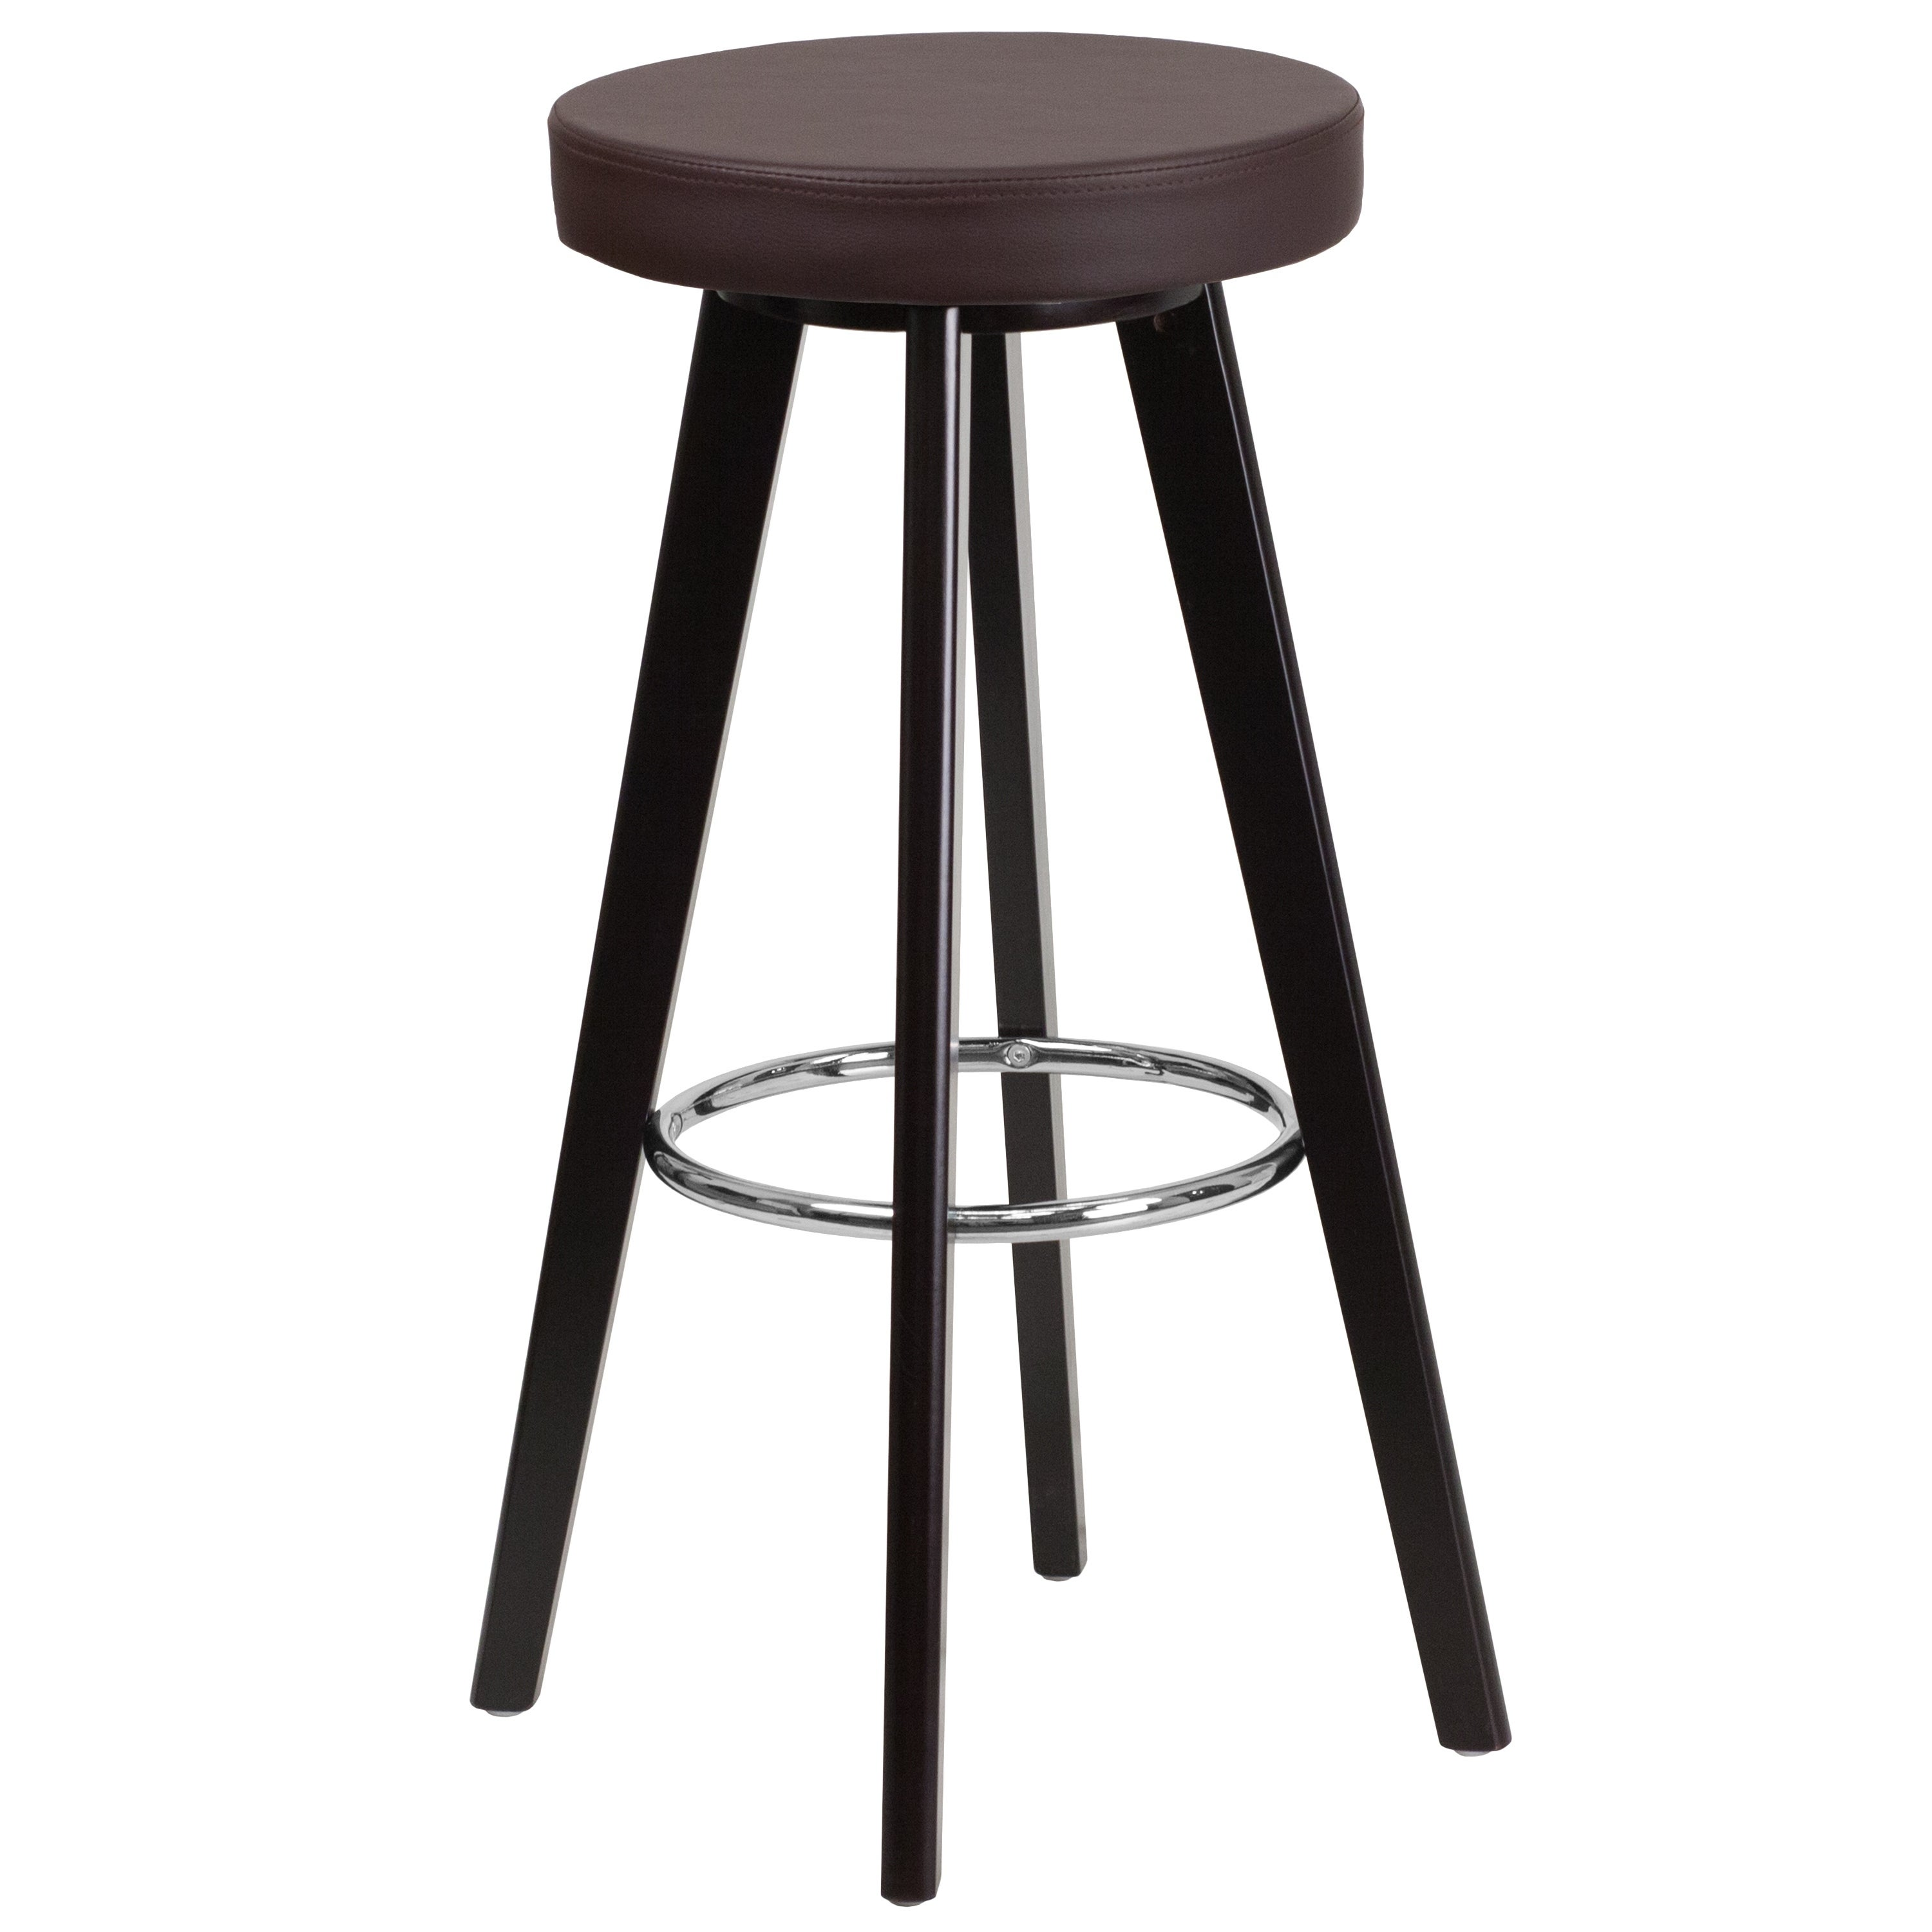 Amazing Trenton Series 29 Inch High Contemporary Vinyl Barstool With Cappuccino Wood Frame Dailytribune Chair Design For Home Dailytribuneorg